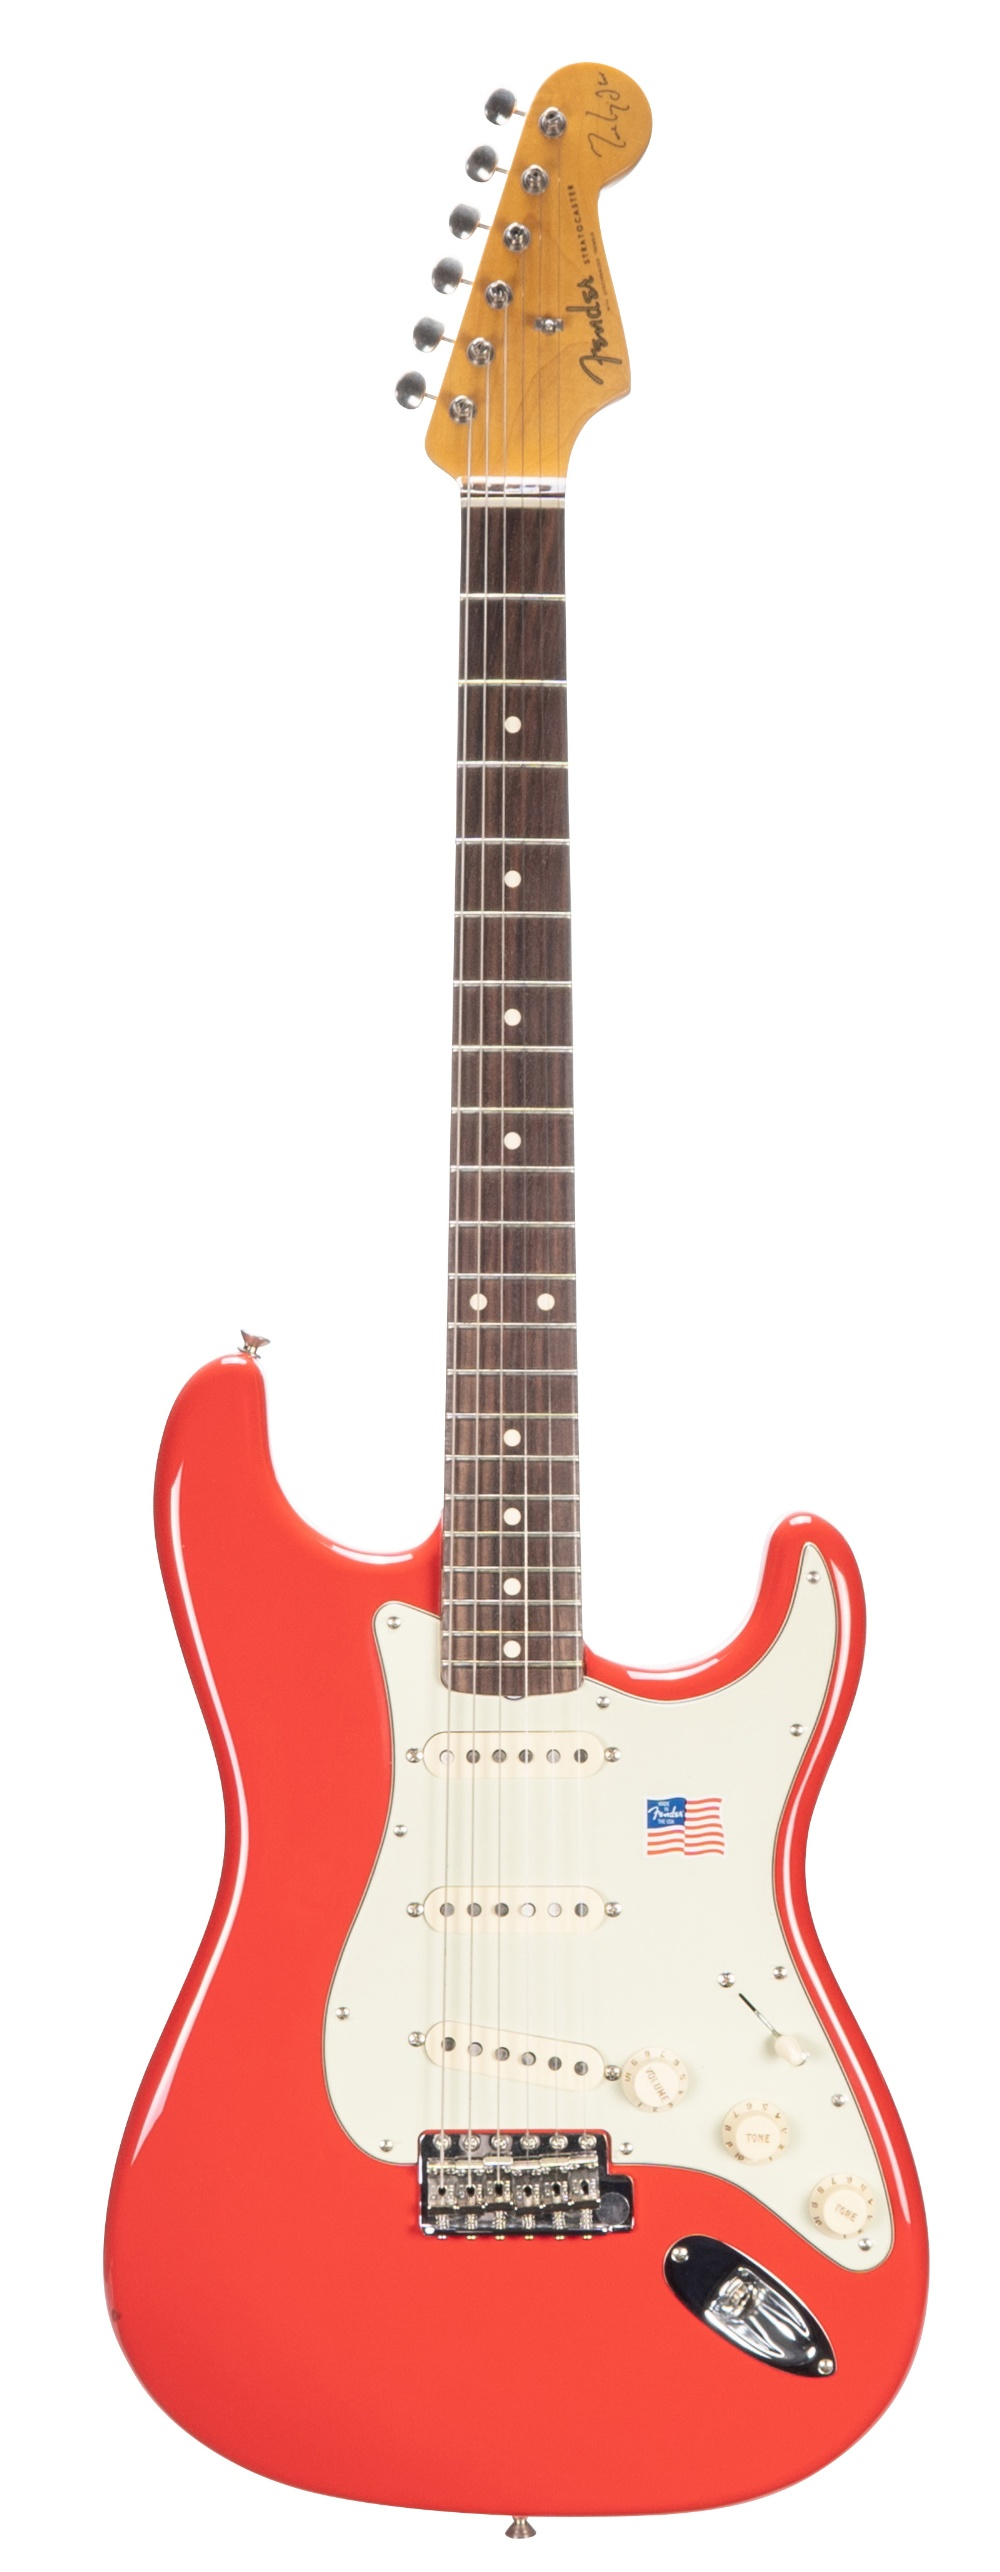 Fender Signature Series Mark Knopfler Stratocaster electric guitar, made in USA, ser. no. SE0xxx7;